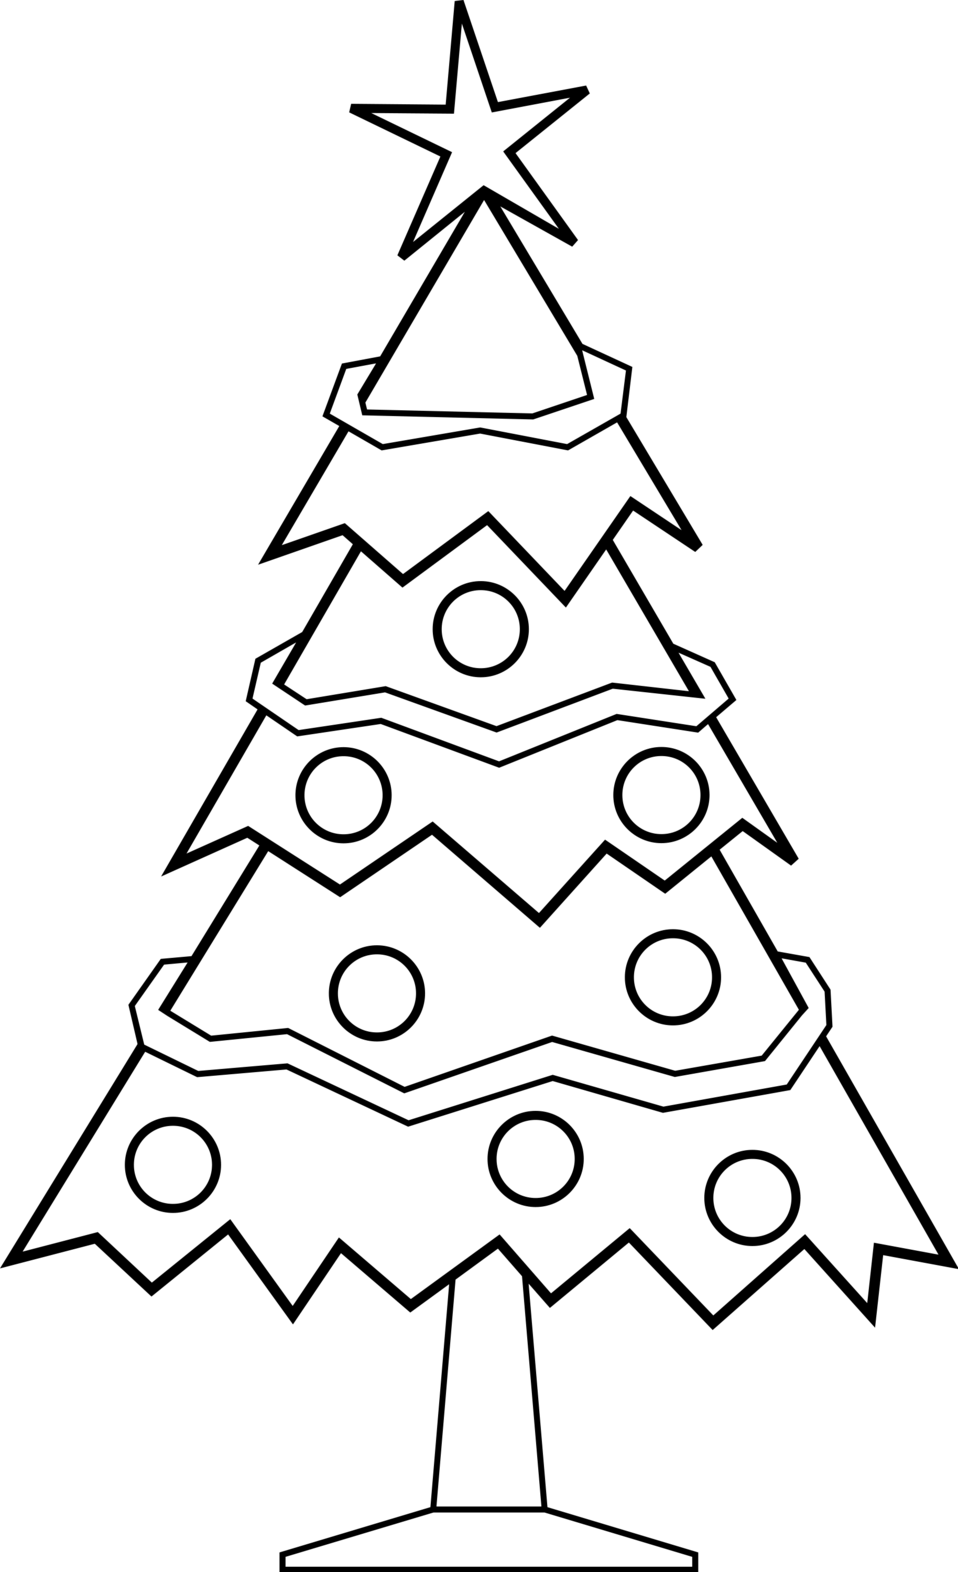 Xmas tree clipart black and white